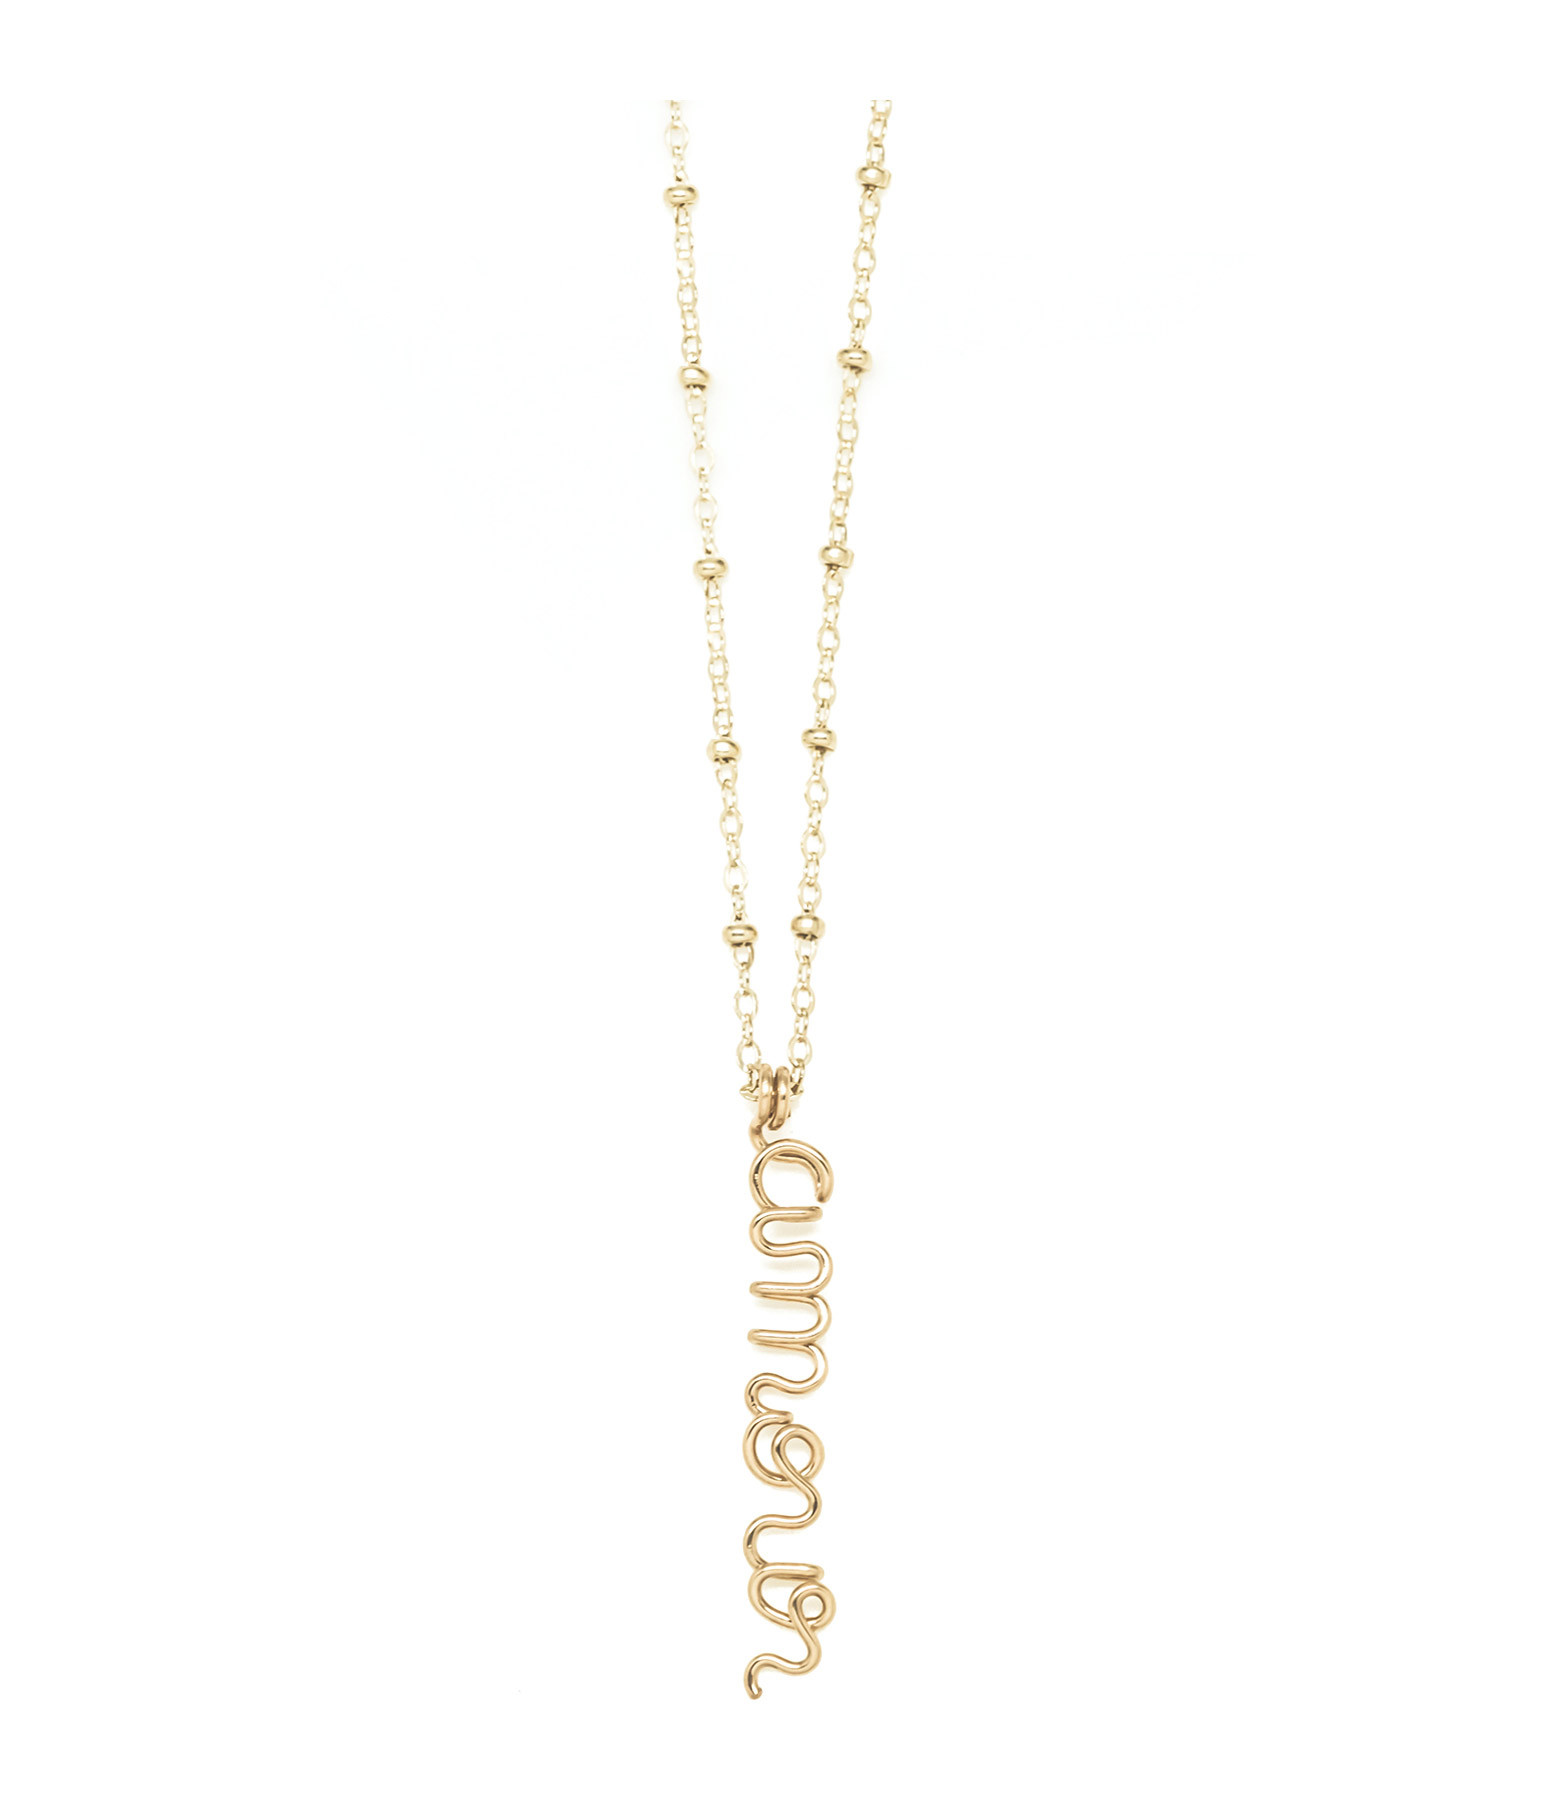 ATELIER PAULIN - Collier Pendentif Original Amour Gold Filled 14K